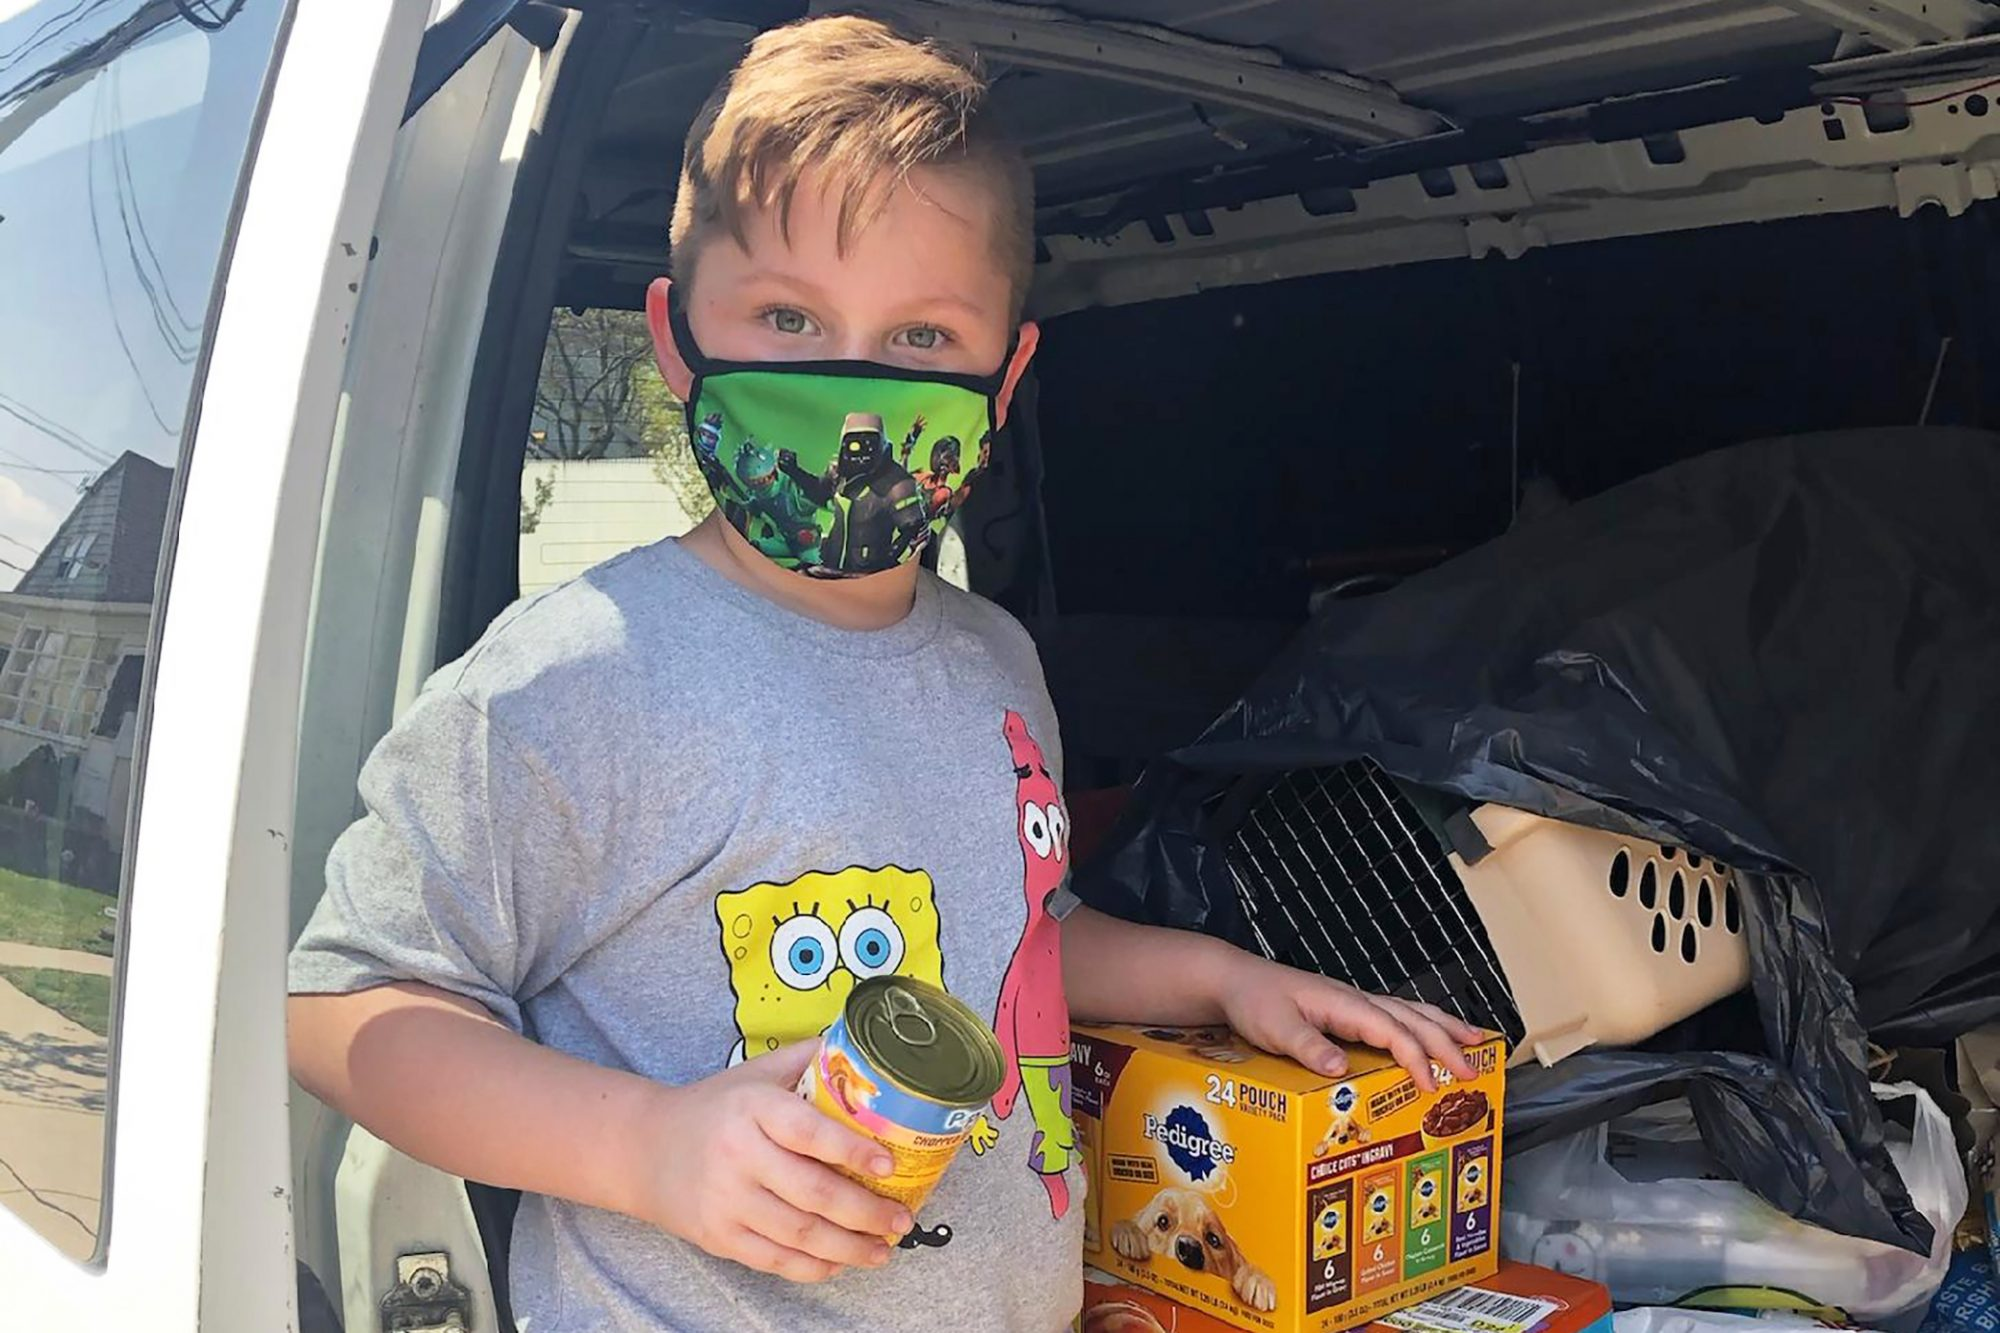 Conner in van with collection of pet food filled in the back